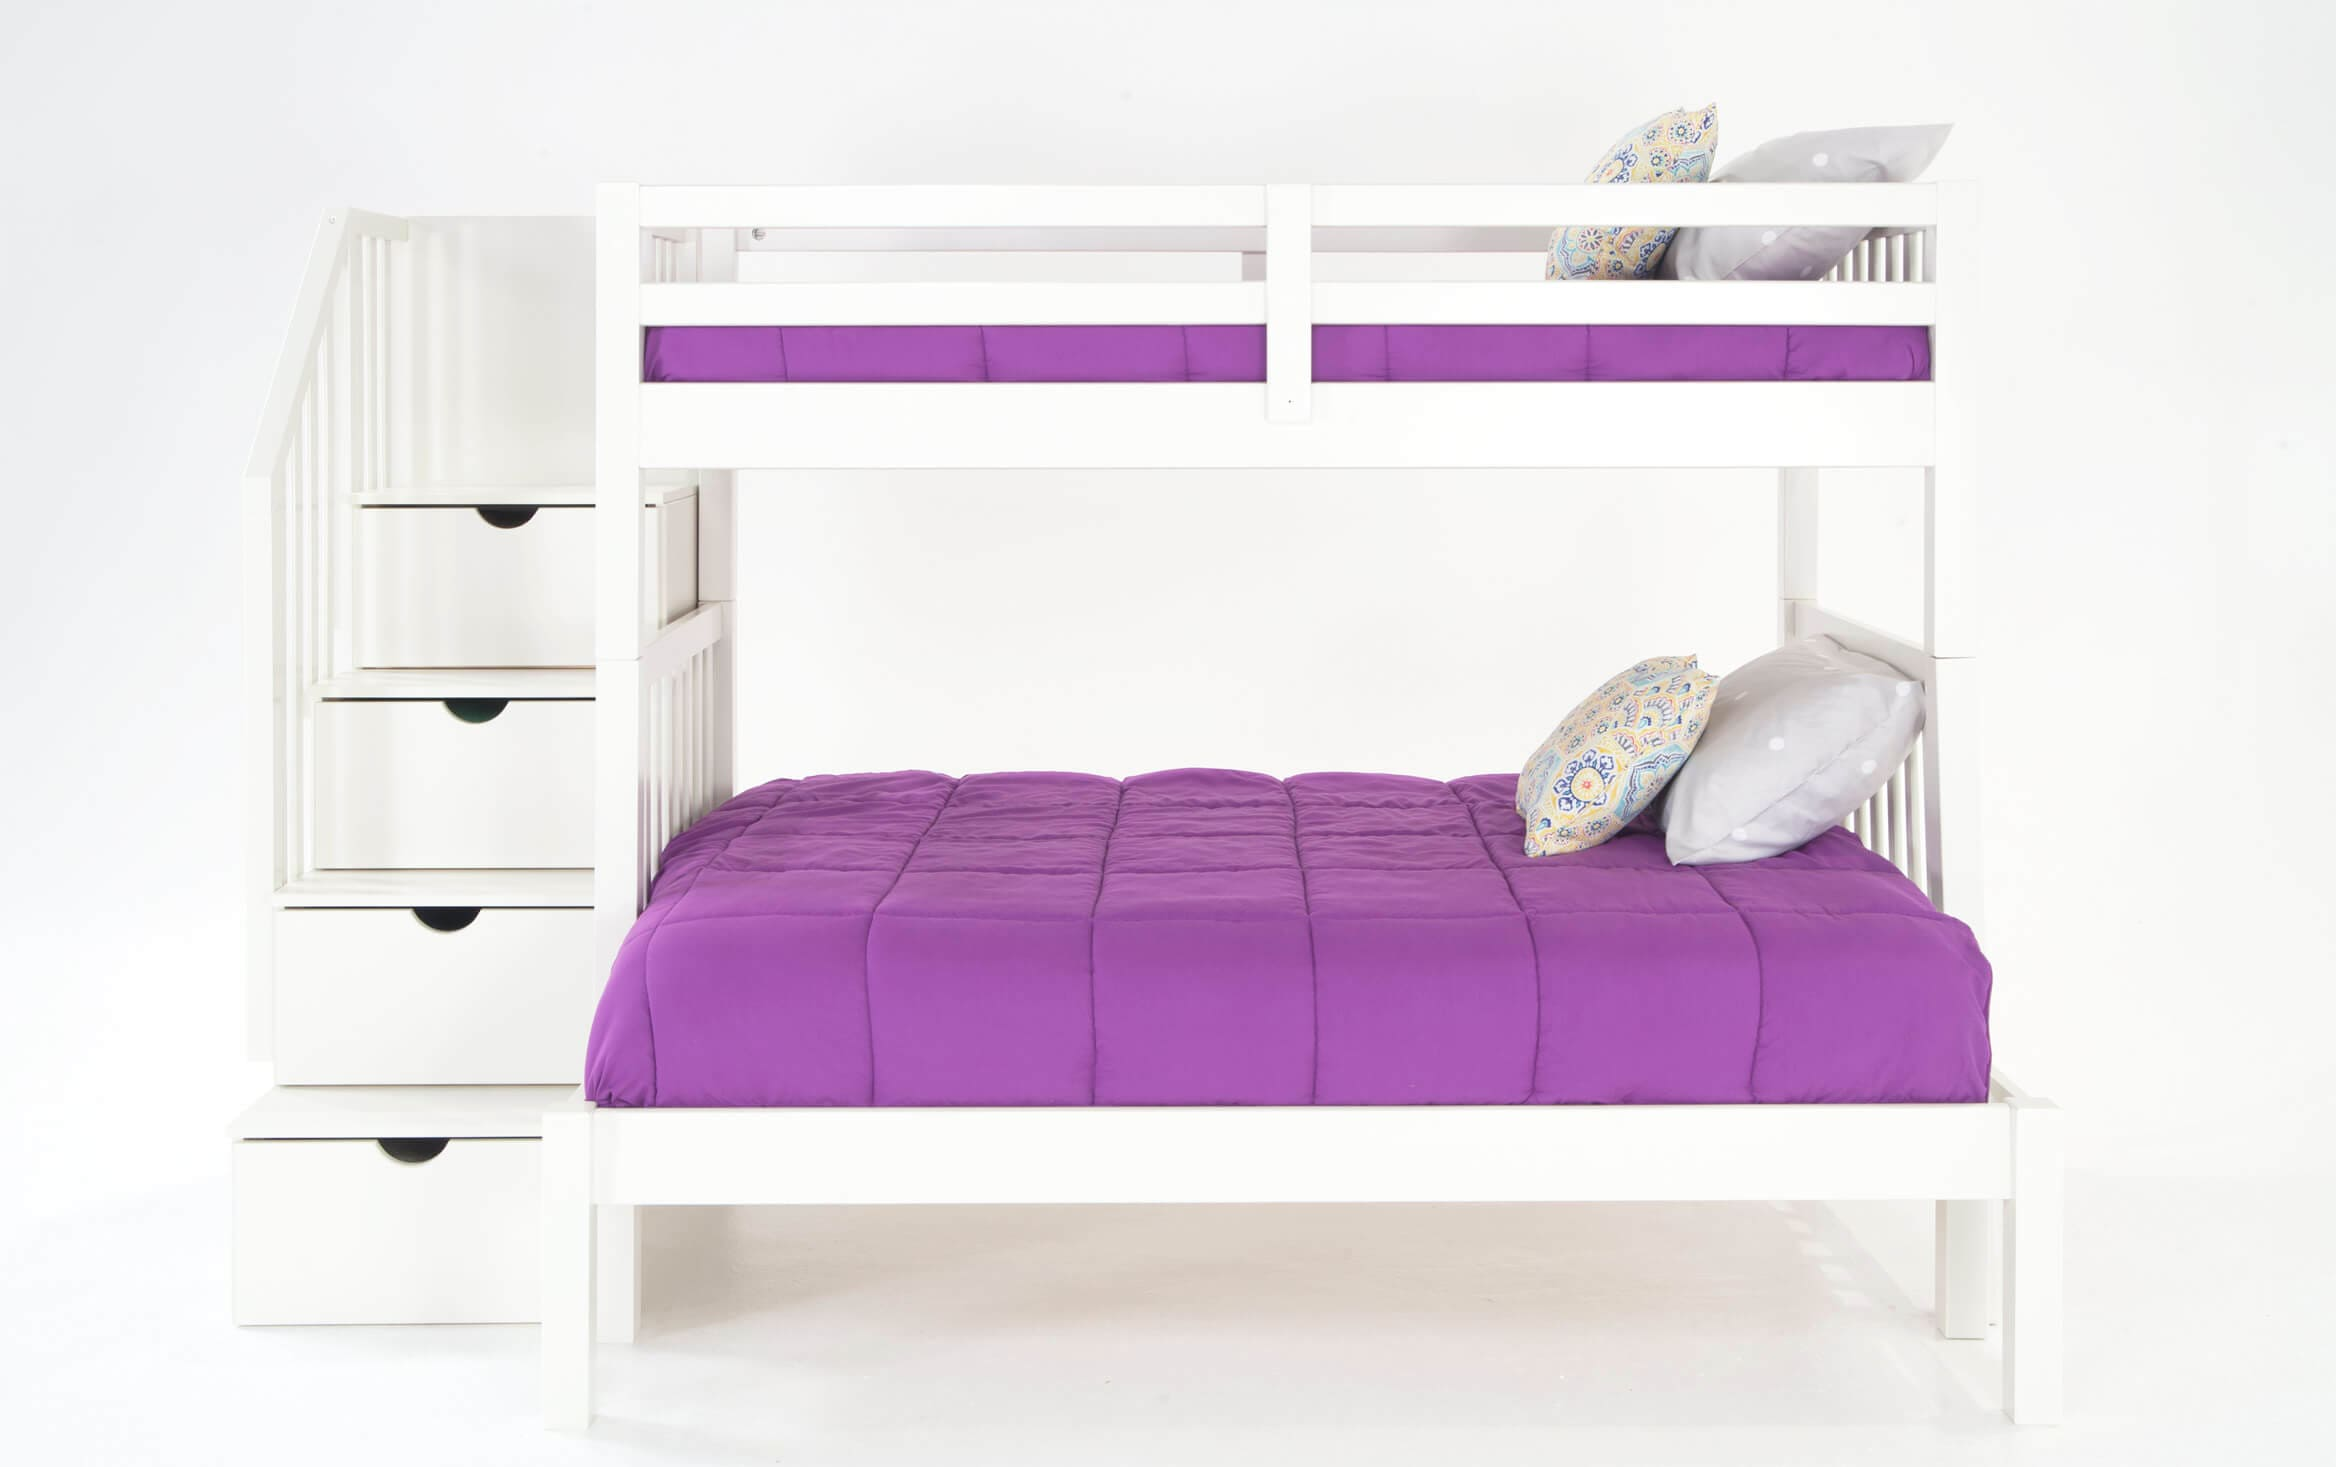 Bob S Discount Bunk Beds Cheaper Than Retail Price Buy Clothing Accessories And Lifestyle Products For Women Men